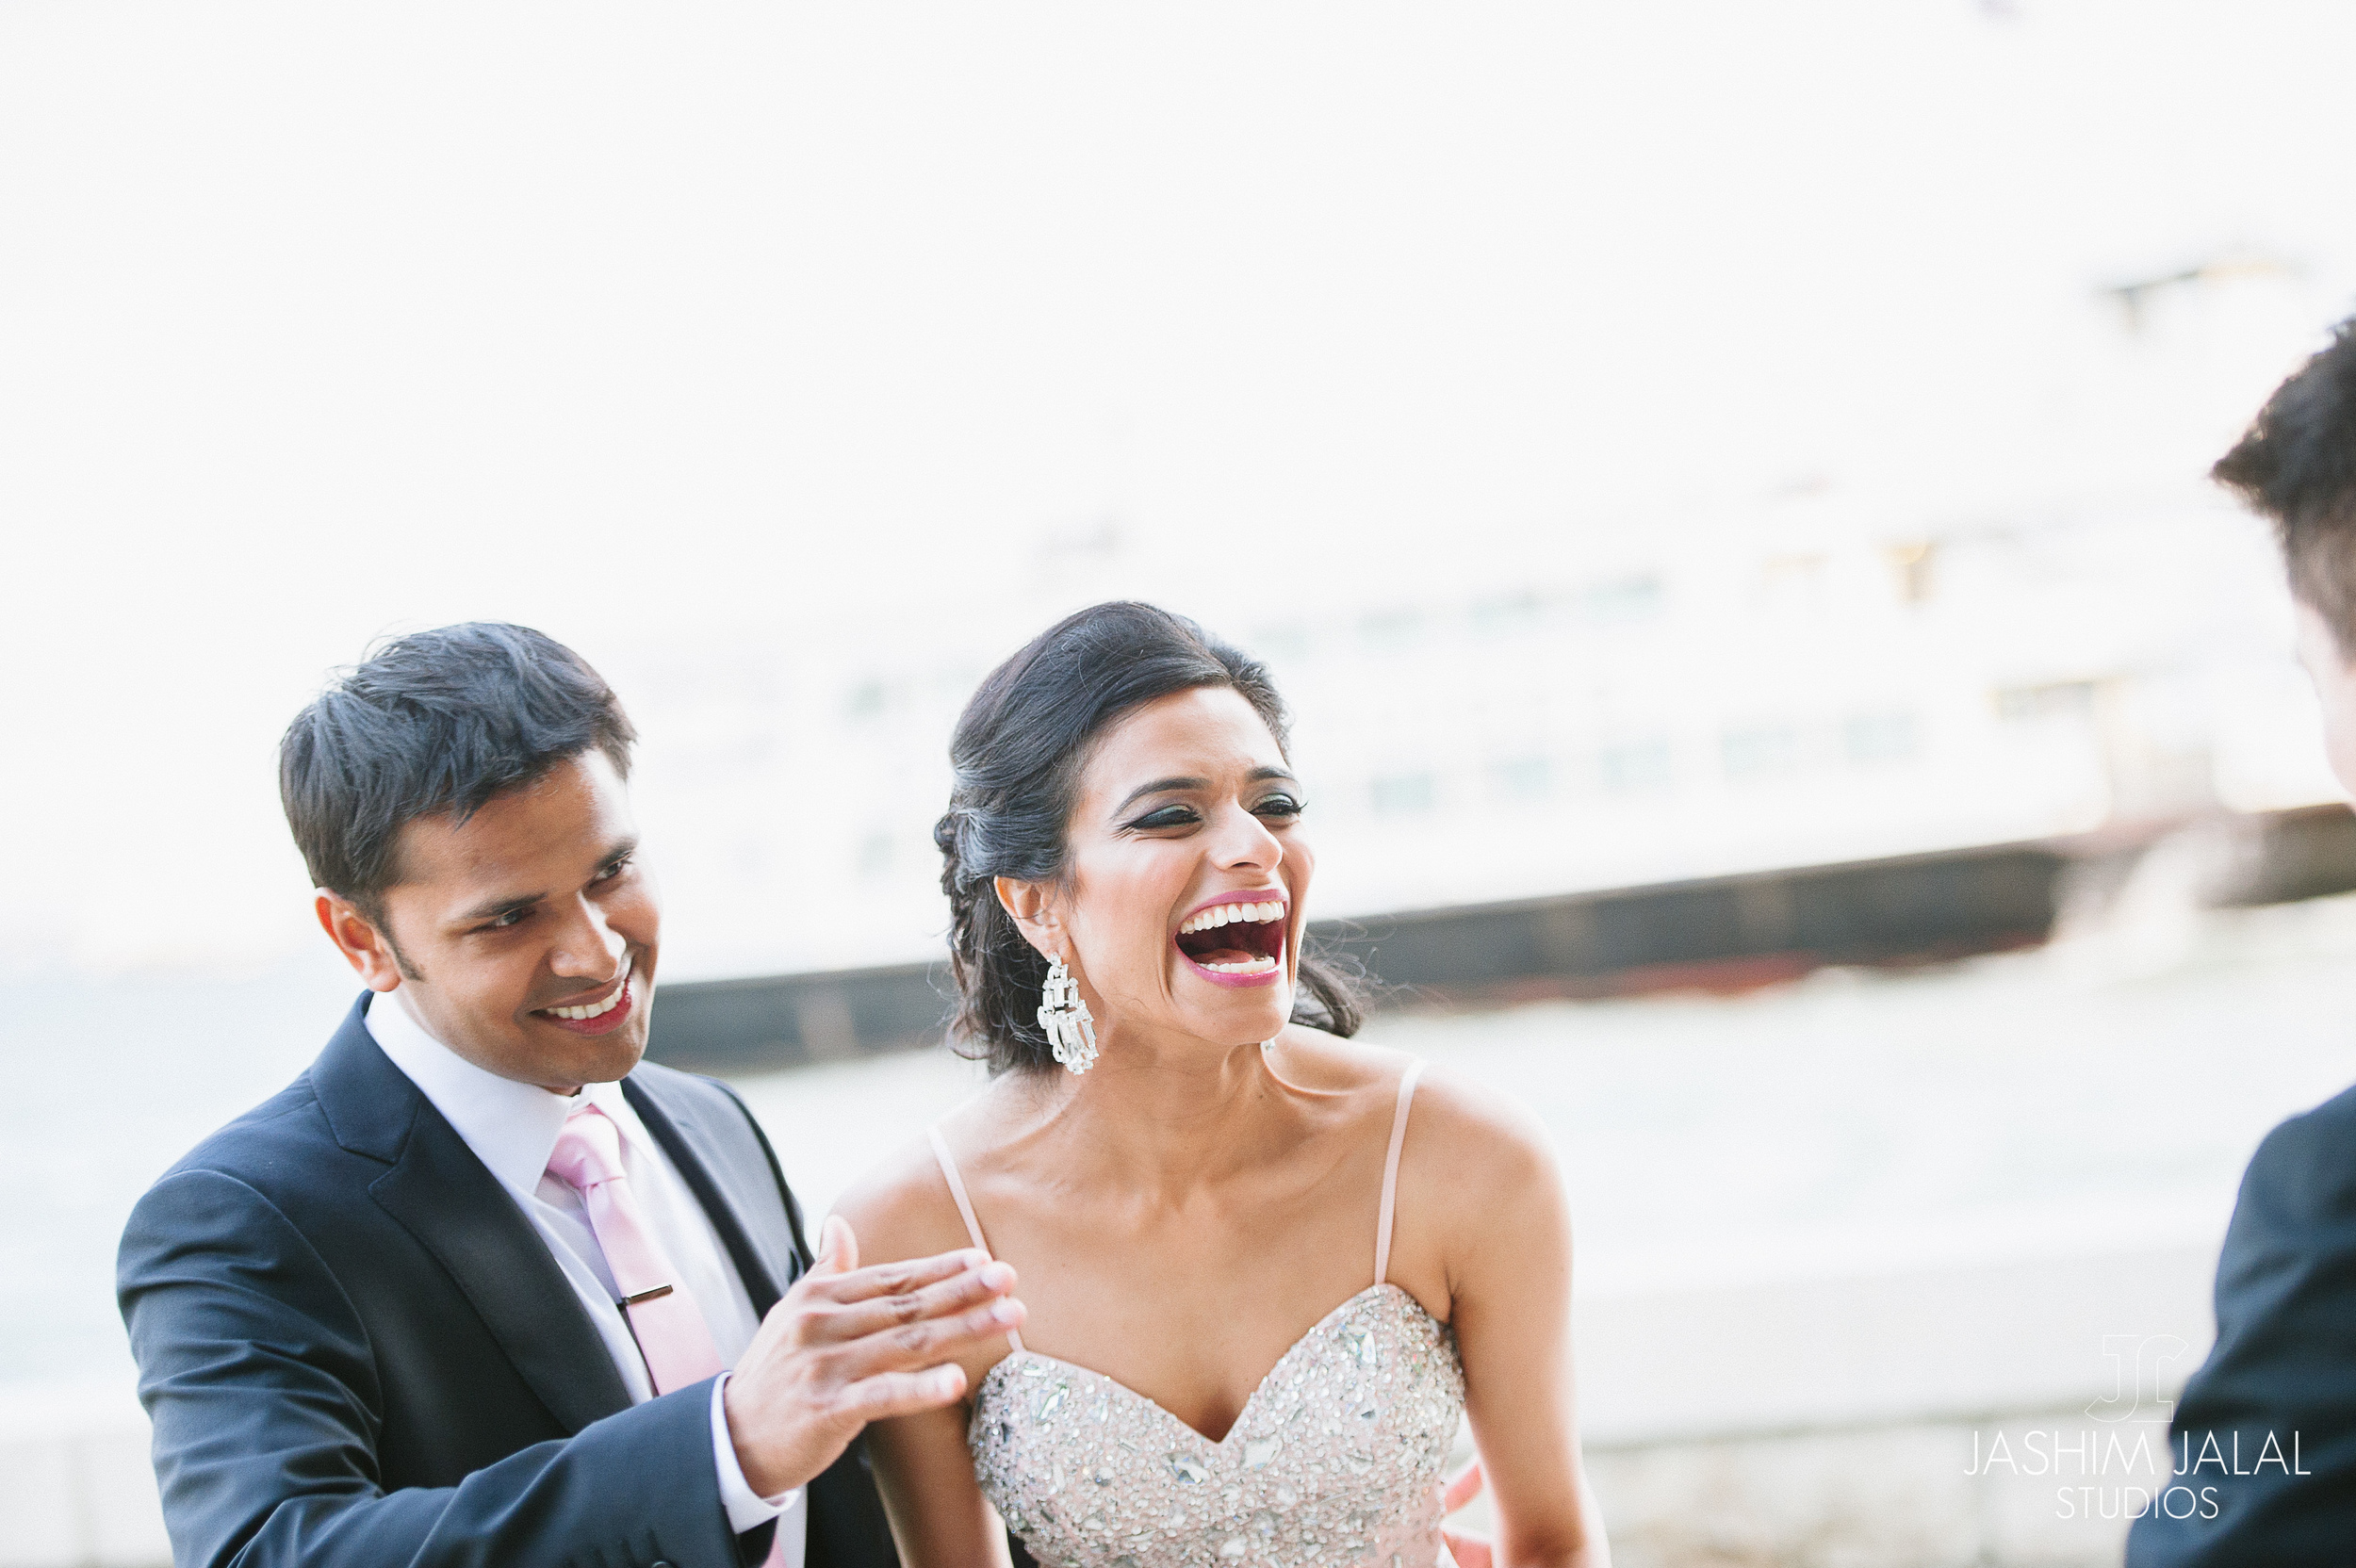 LAUGHING INDIAN COUPLE